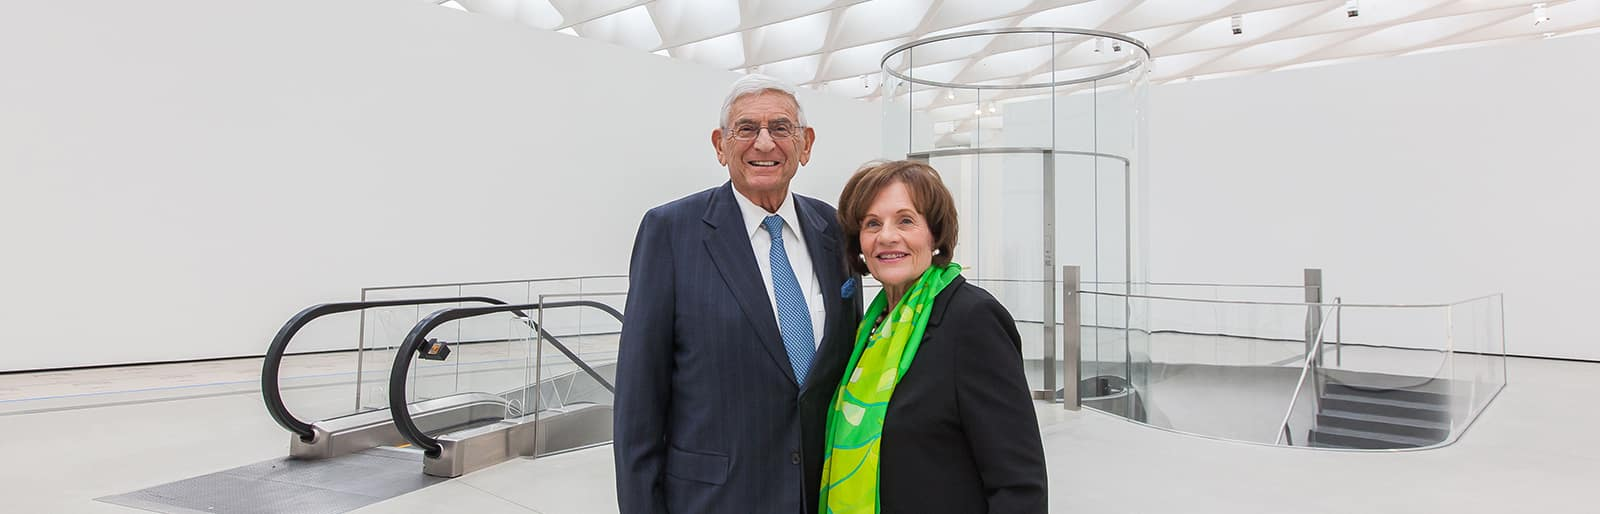 Eli Broad Announces Retirement From Broad Foundation After Six Decades